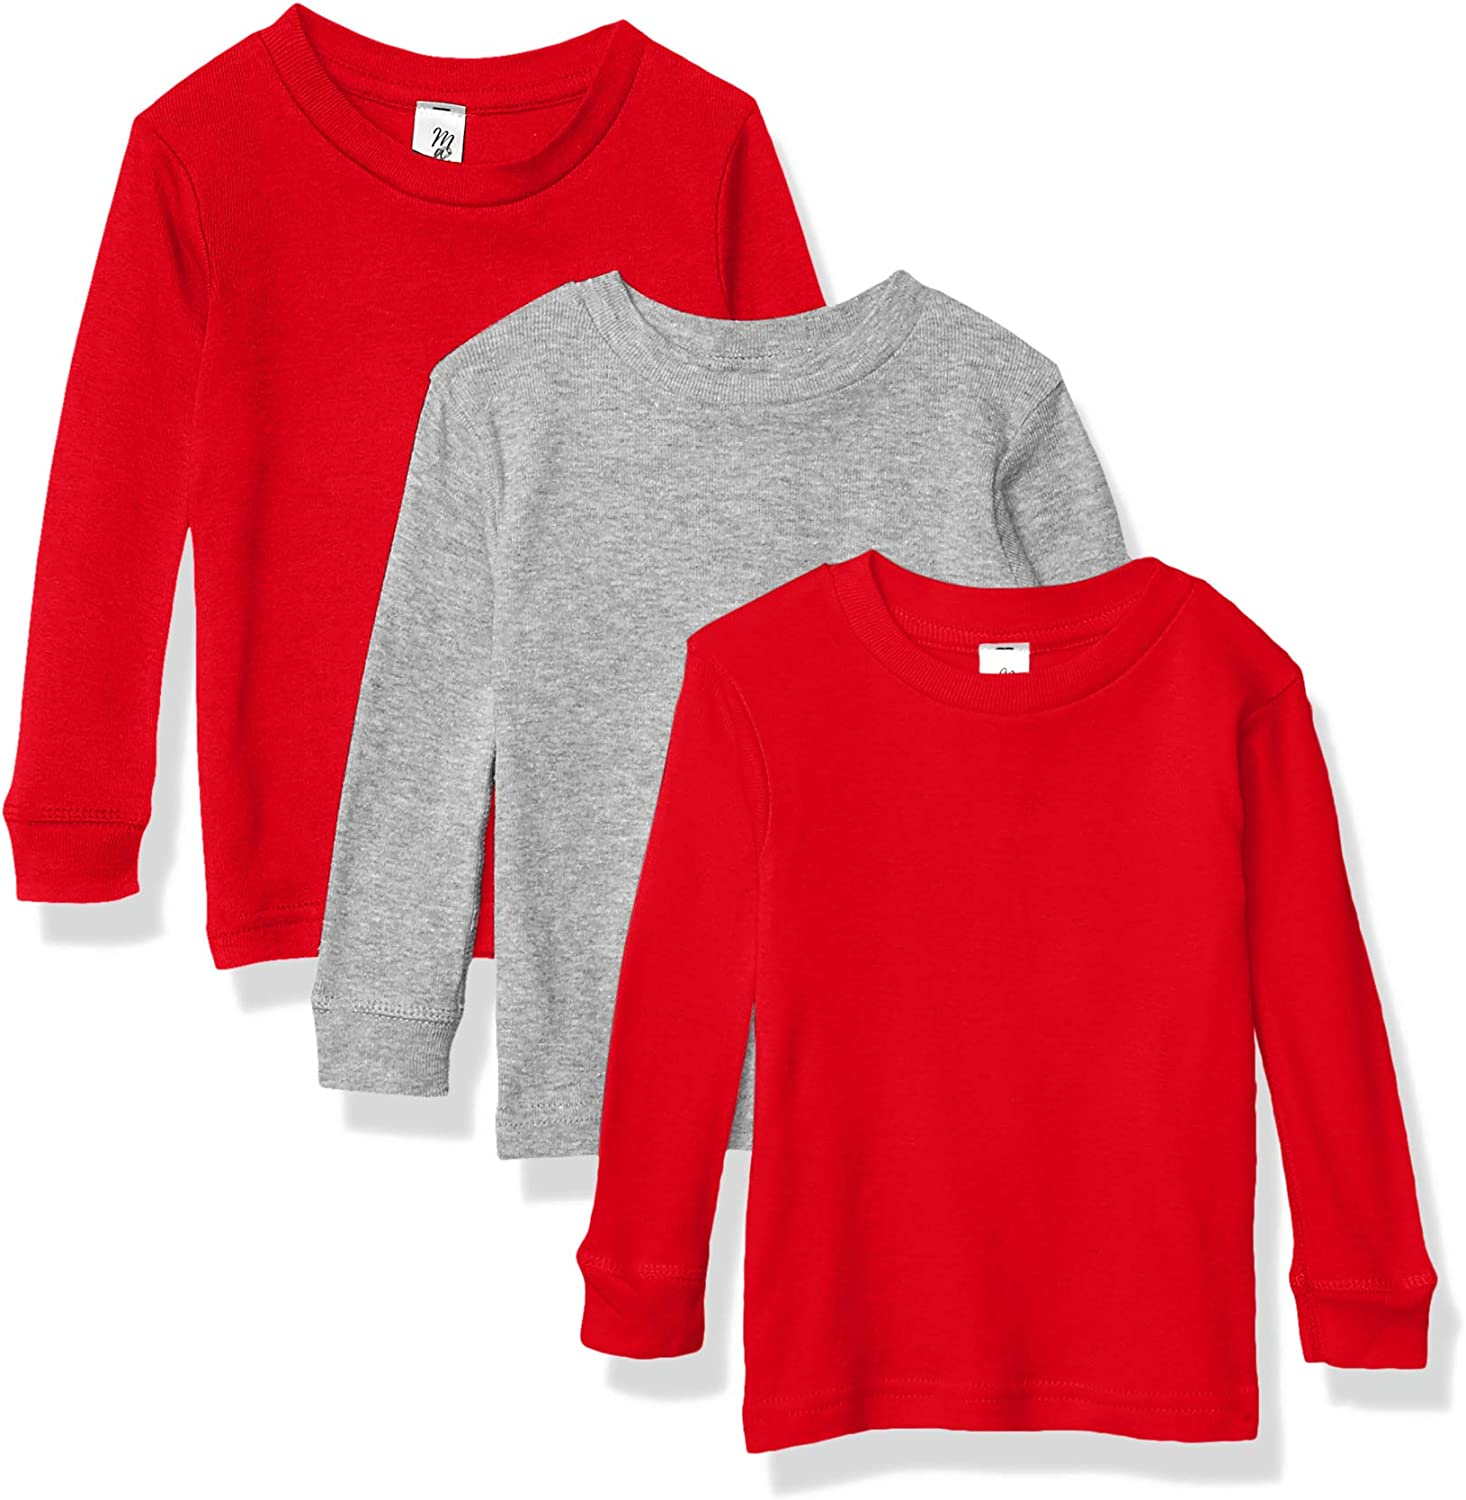 Pack of 3 Marky G Apparel Baby Girls Long Sleeve Round Neck Pajama Top